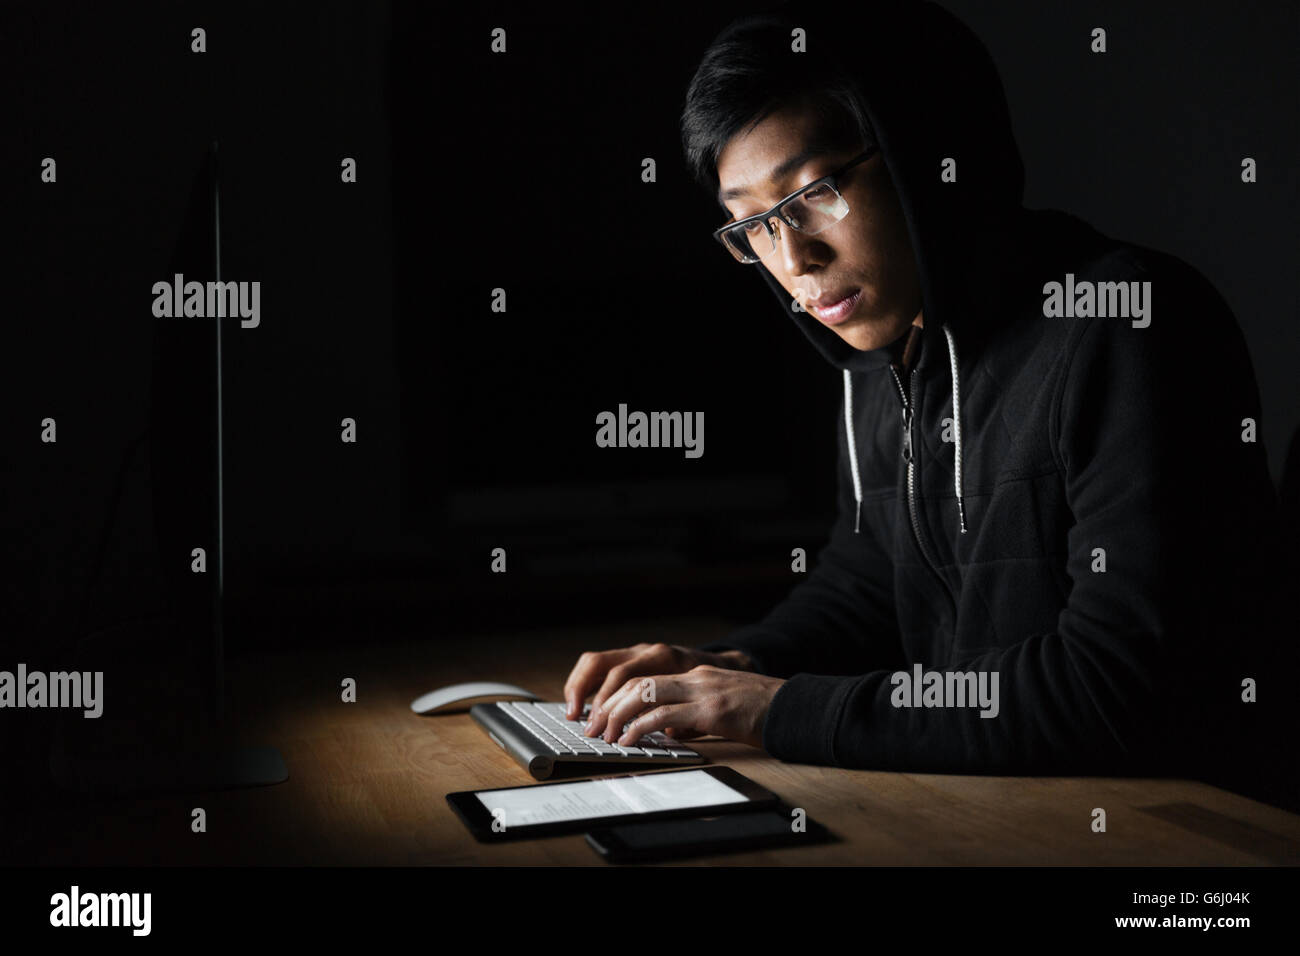 Hacker sitting and using laptop, tablet and smartphone in dark room - Stock Image